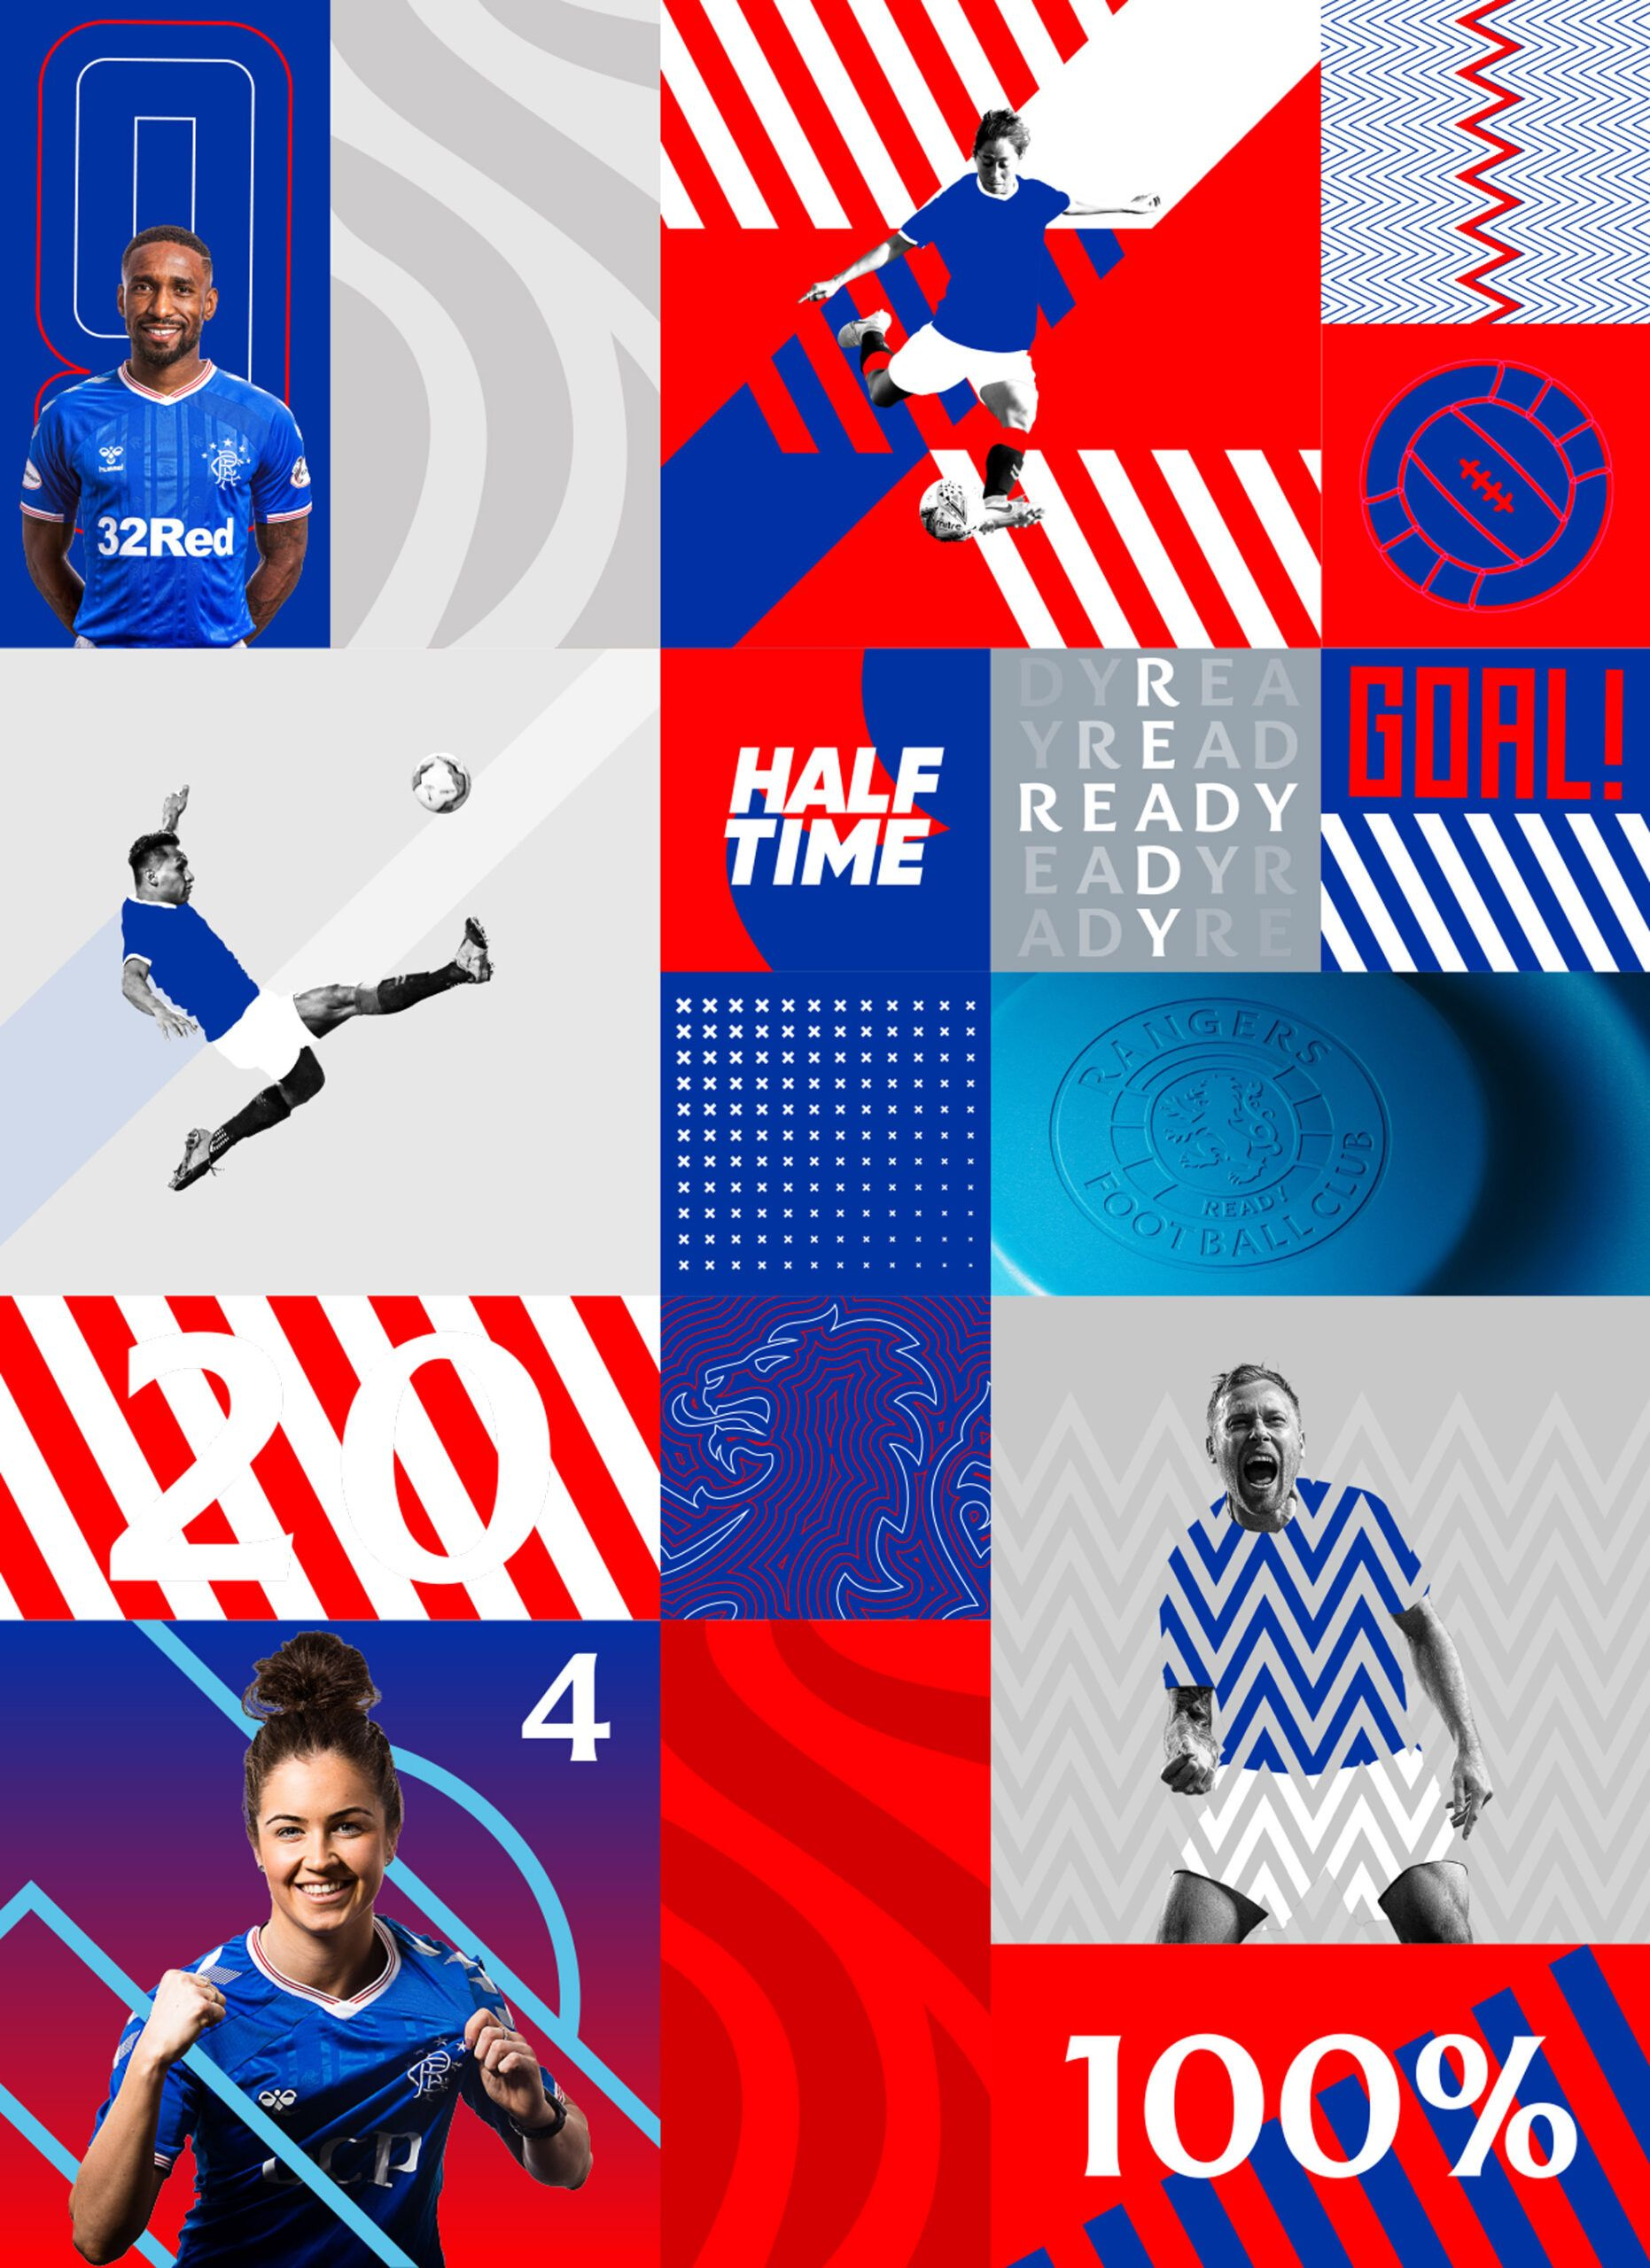 Brand New: New Logo and Identity for Rangers Football Club by See Saw Creative